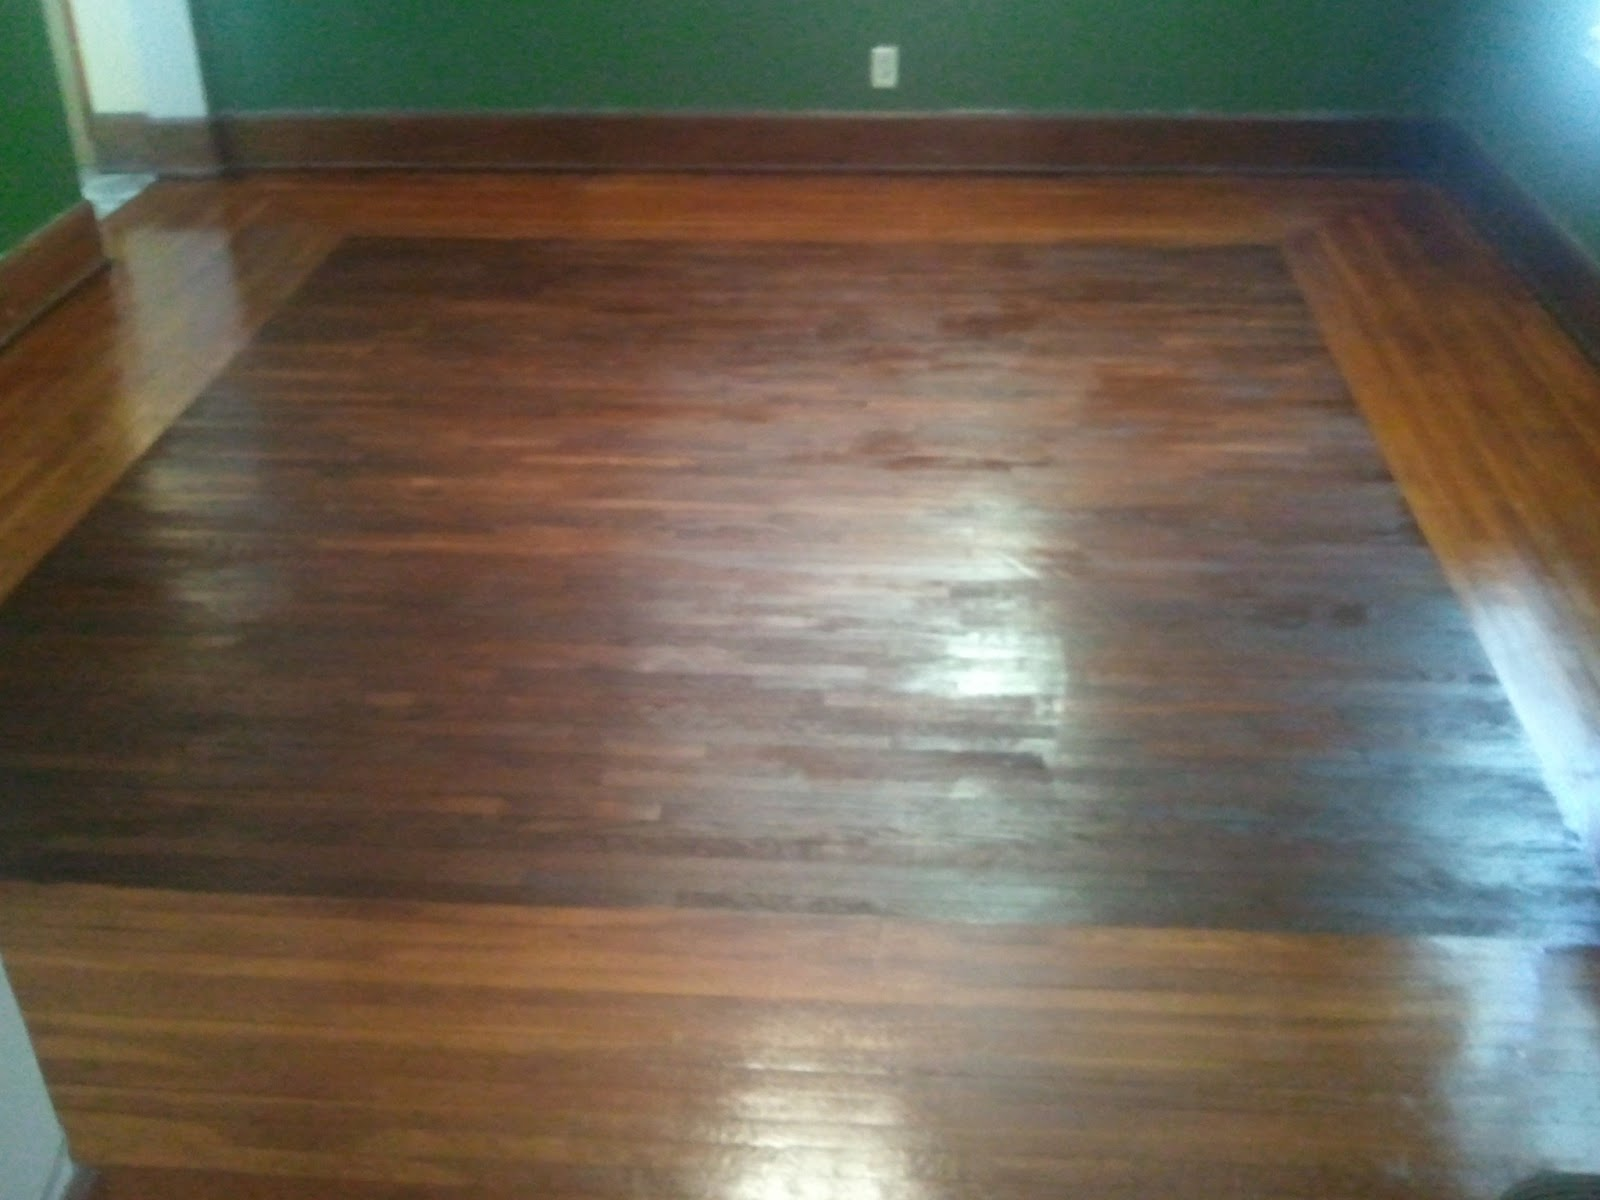 Minwax super fast drying polyurethane - We Debated About Getting A Rug But Decided It Defeated The Purpose Of The Two Toned Floor To Just Cover It Up So Here It Is With The Furniture Moved Back